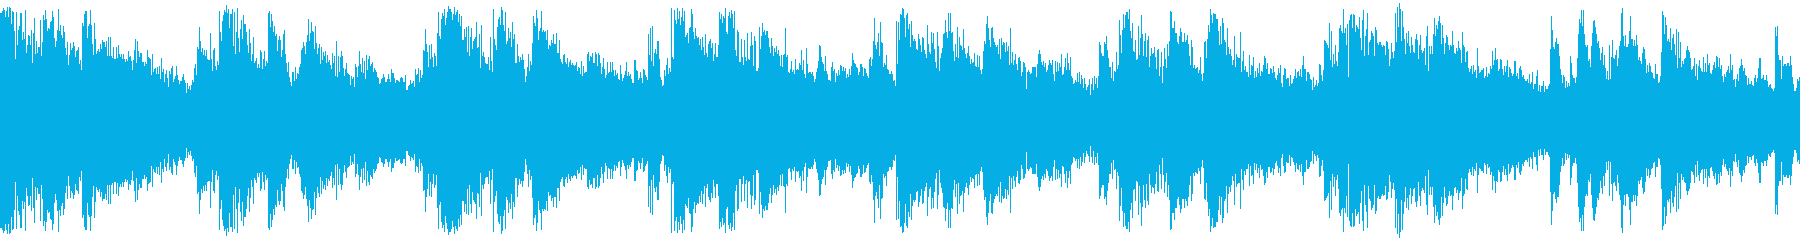 A bright, acousti...'s reproduced waveform